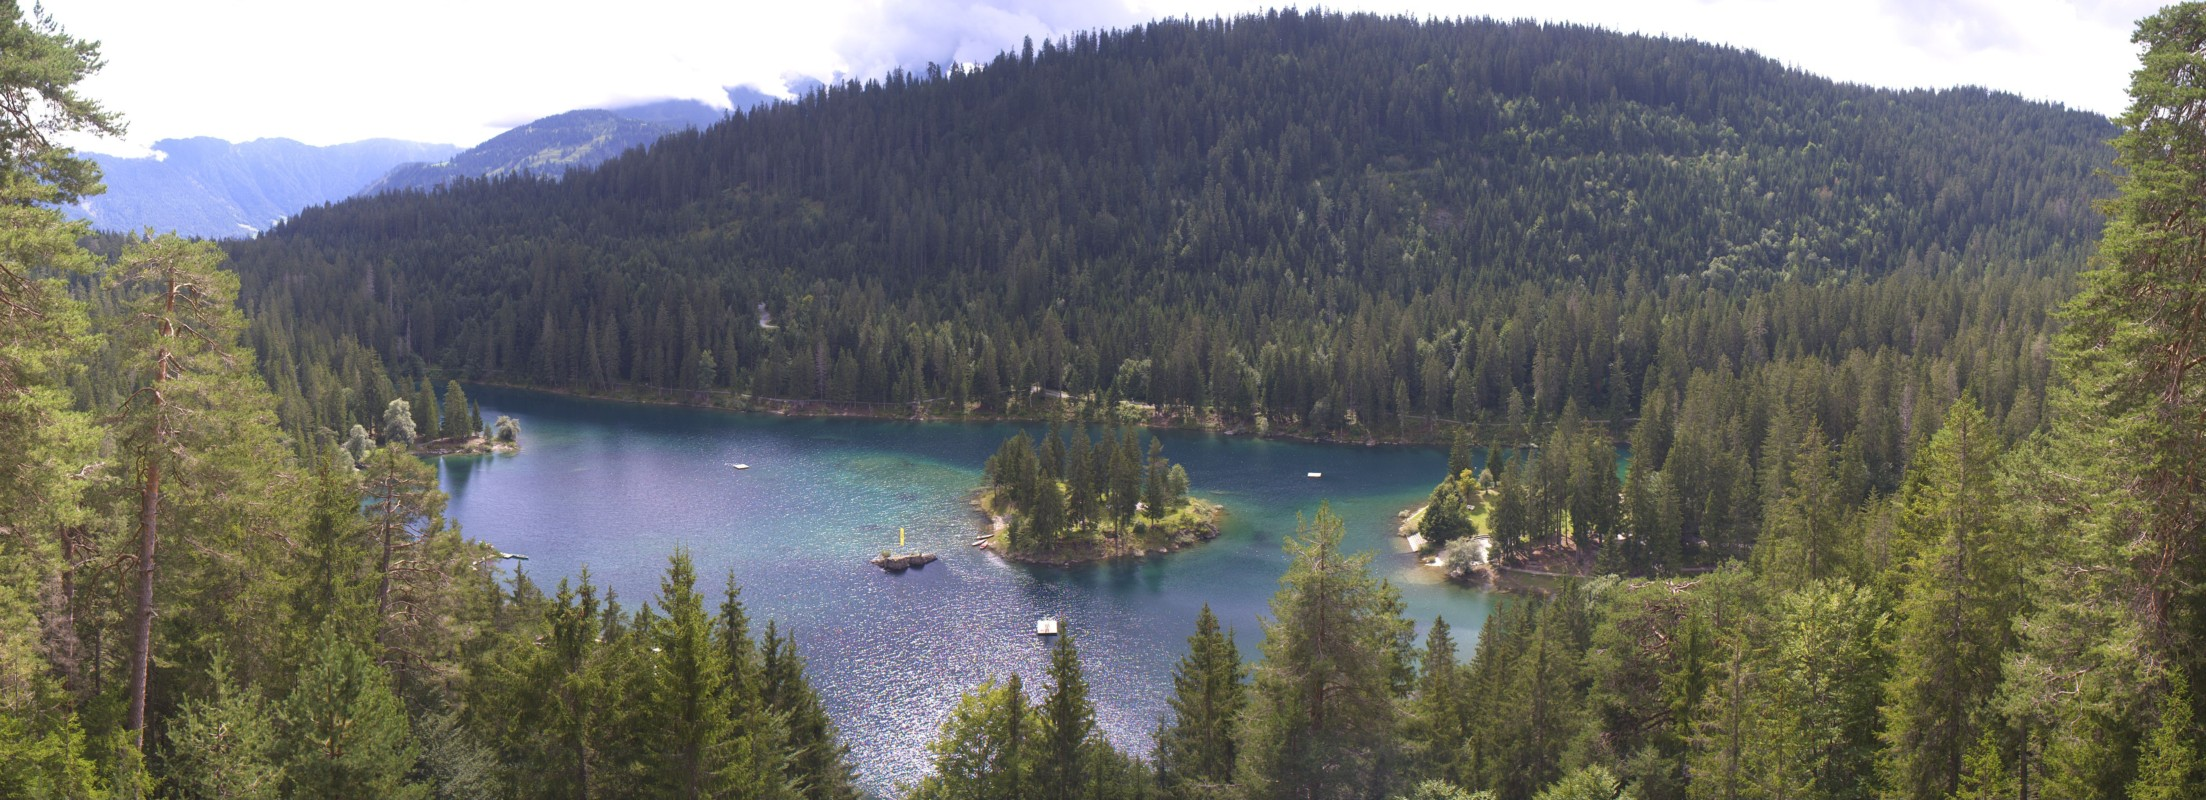 Flims Caumasee Panorama